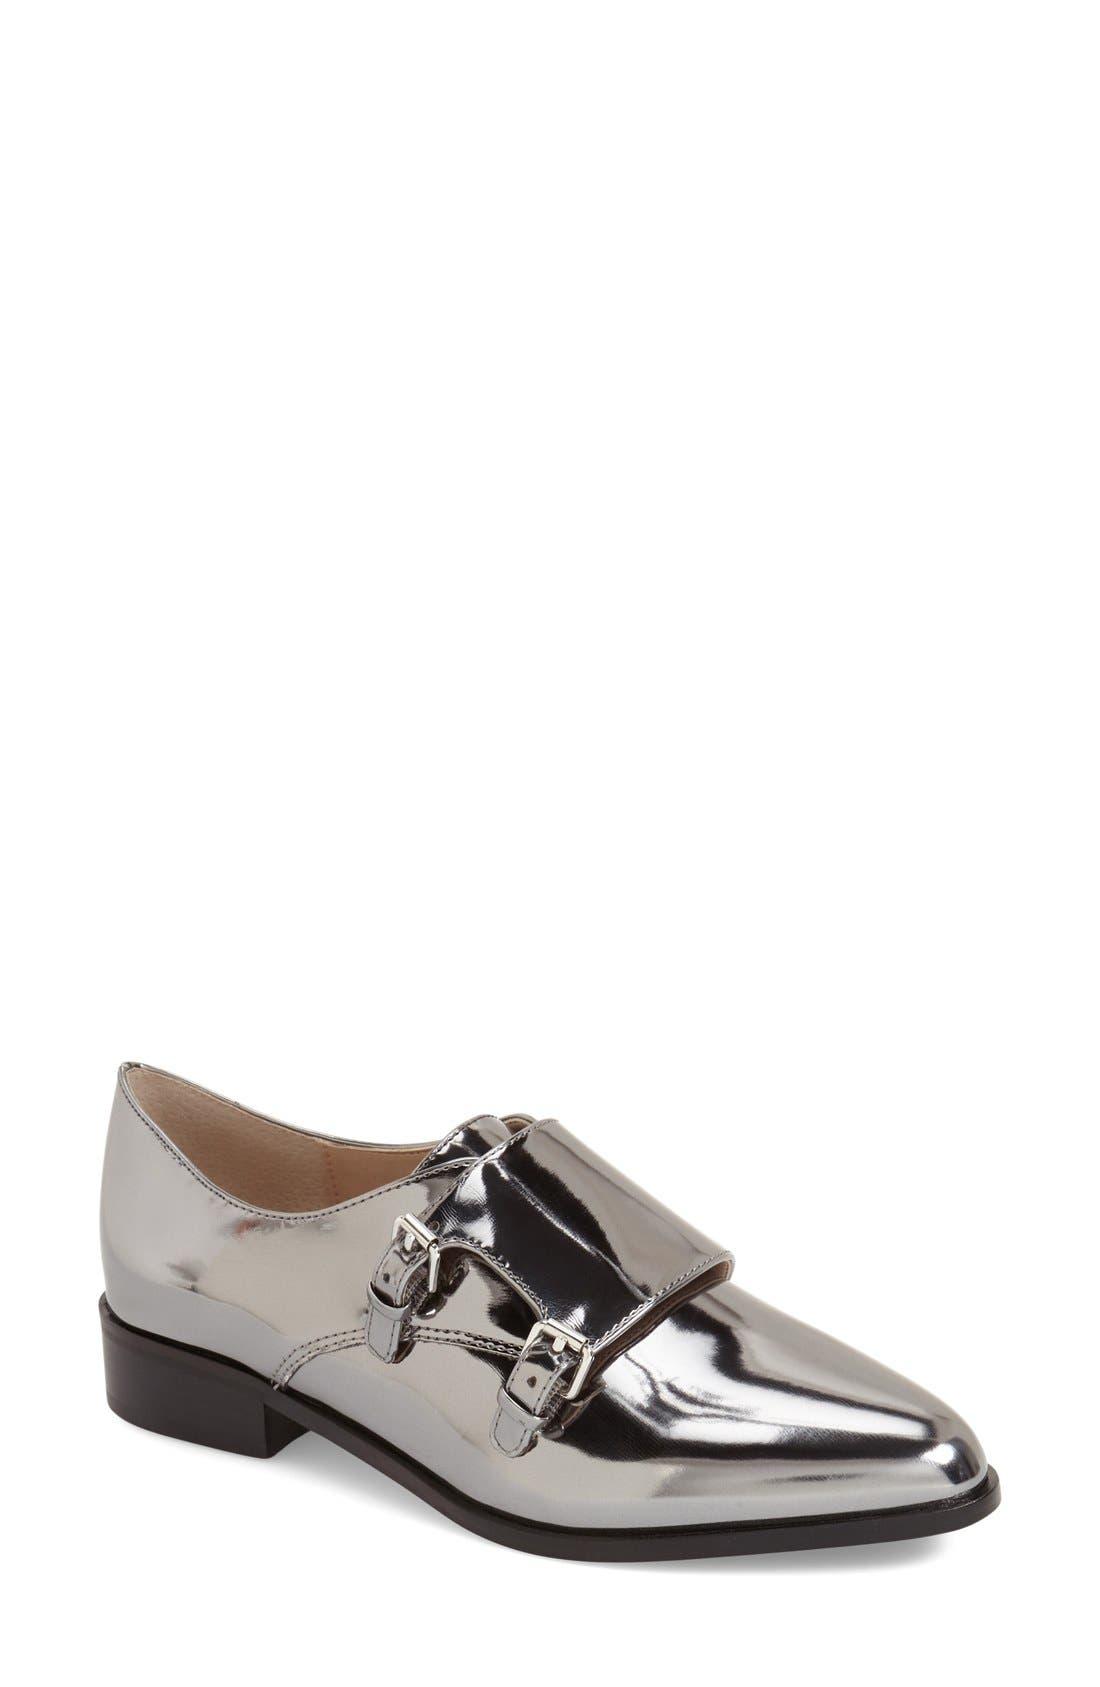 Alternate Image 1 Selected - French Connection 'Lorinda' Monk Strap Loafer (Women)